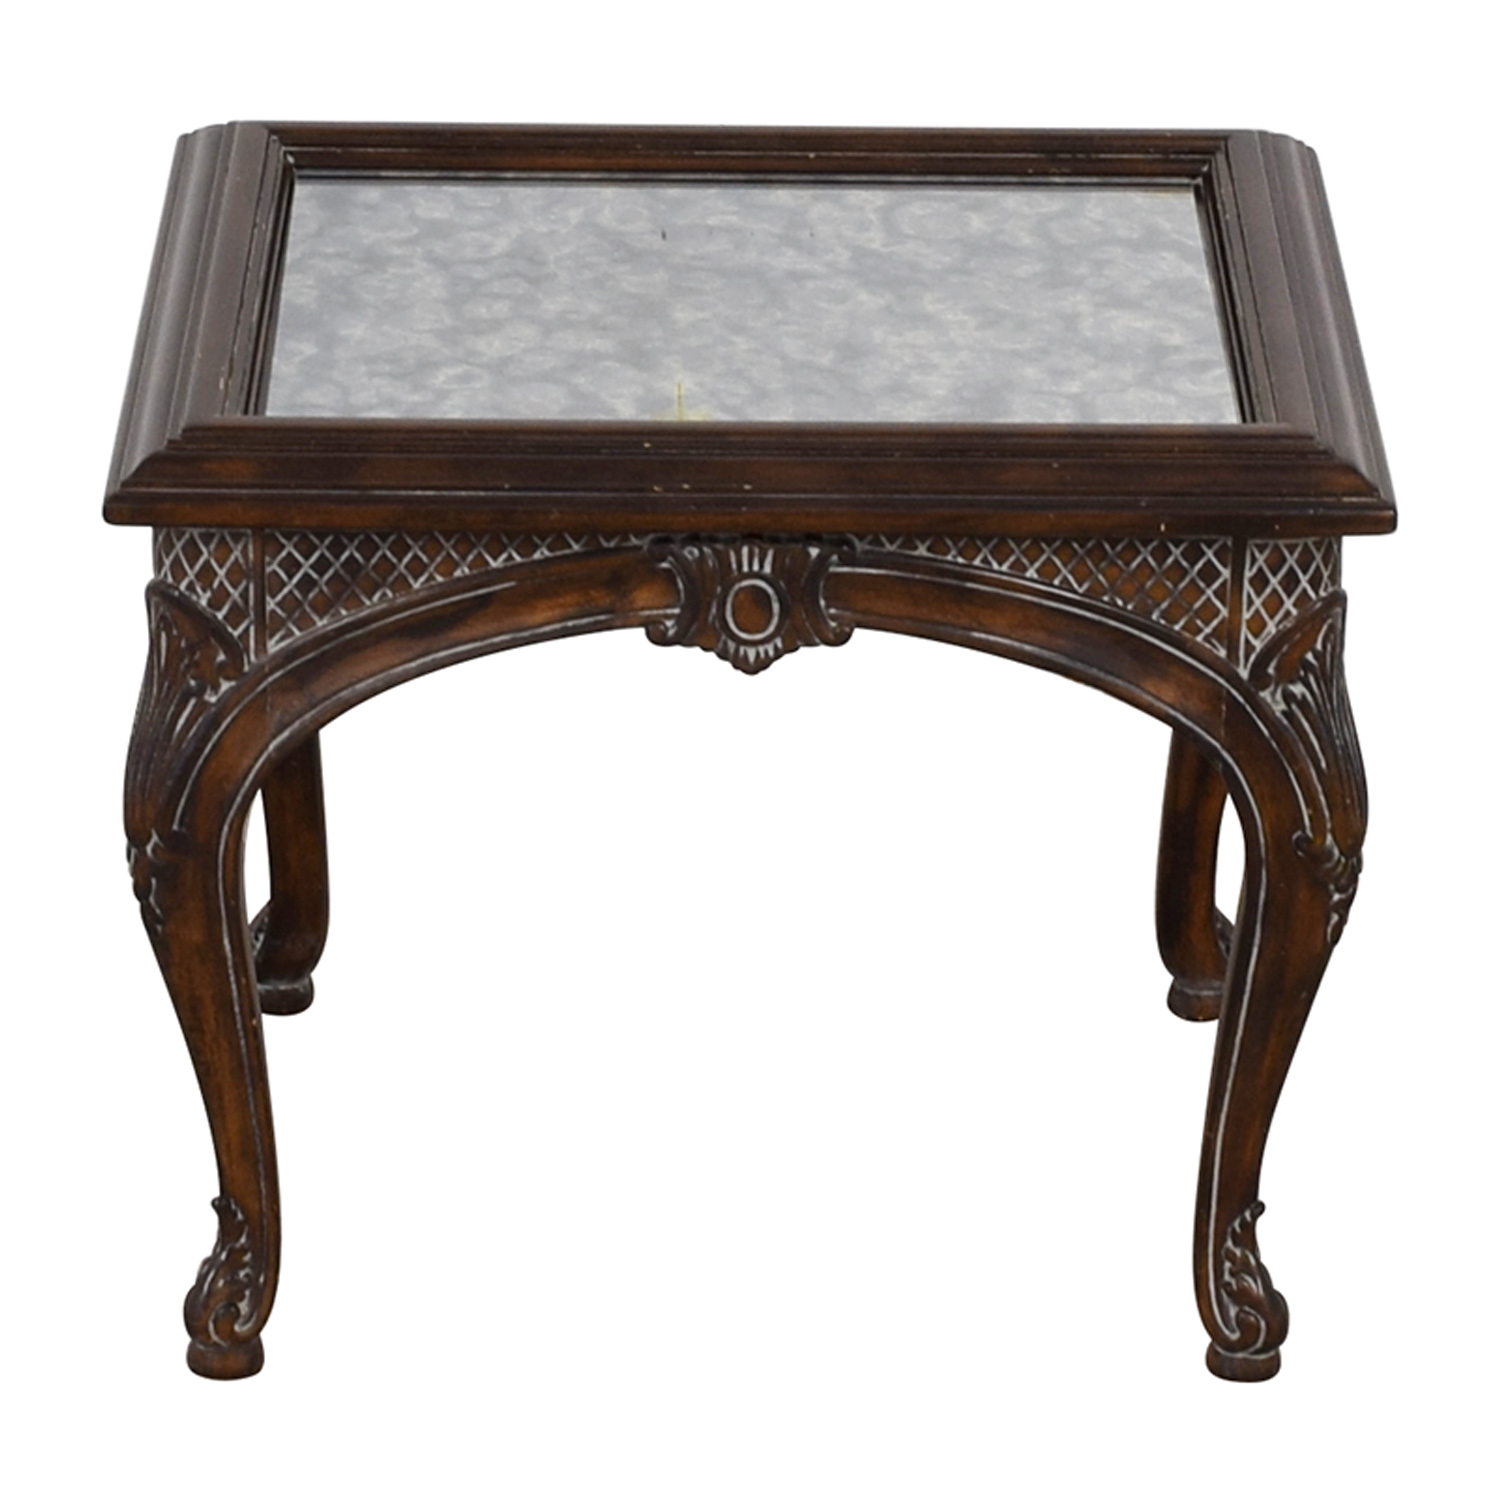 90% OFF   Antique Mirrored Ebony Wood Carved Side Table / Tables